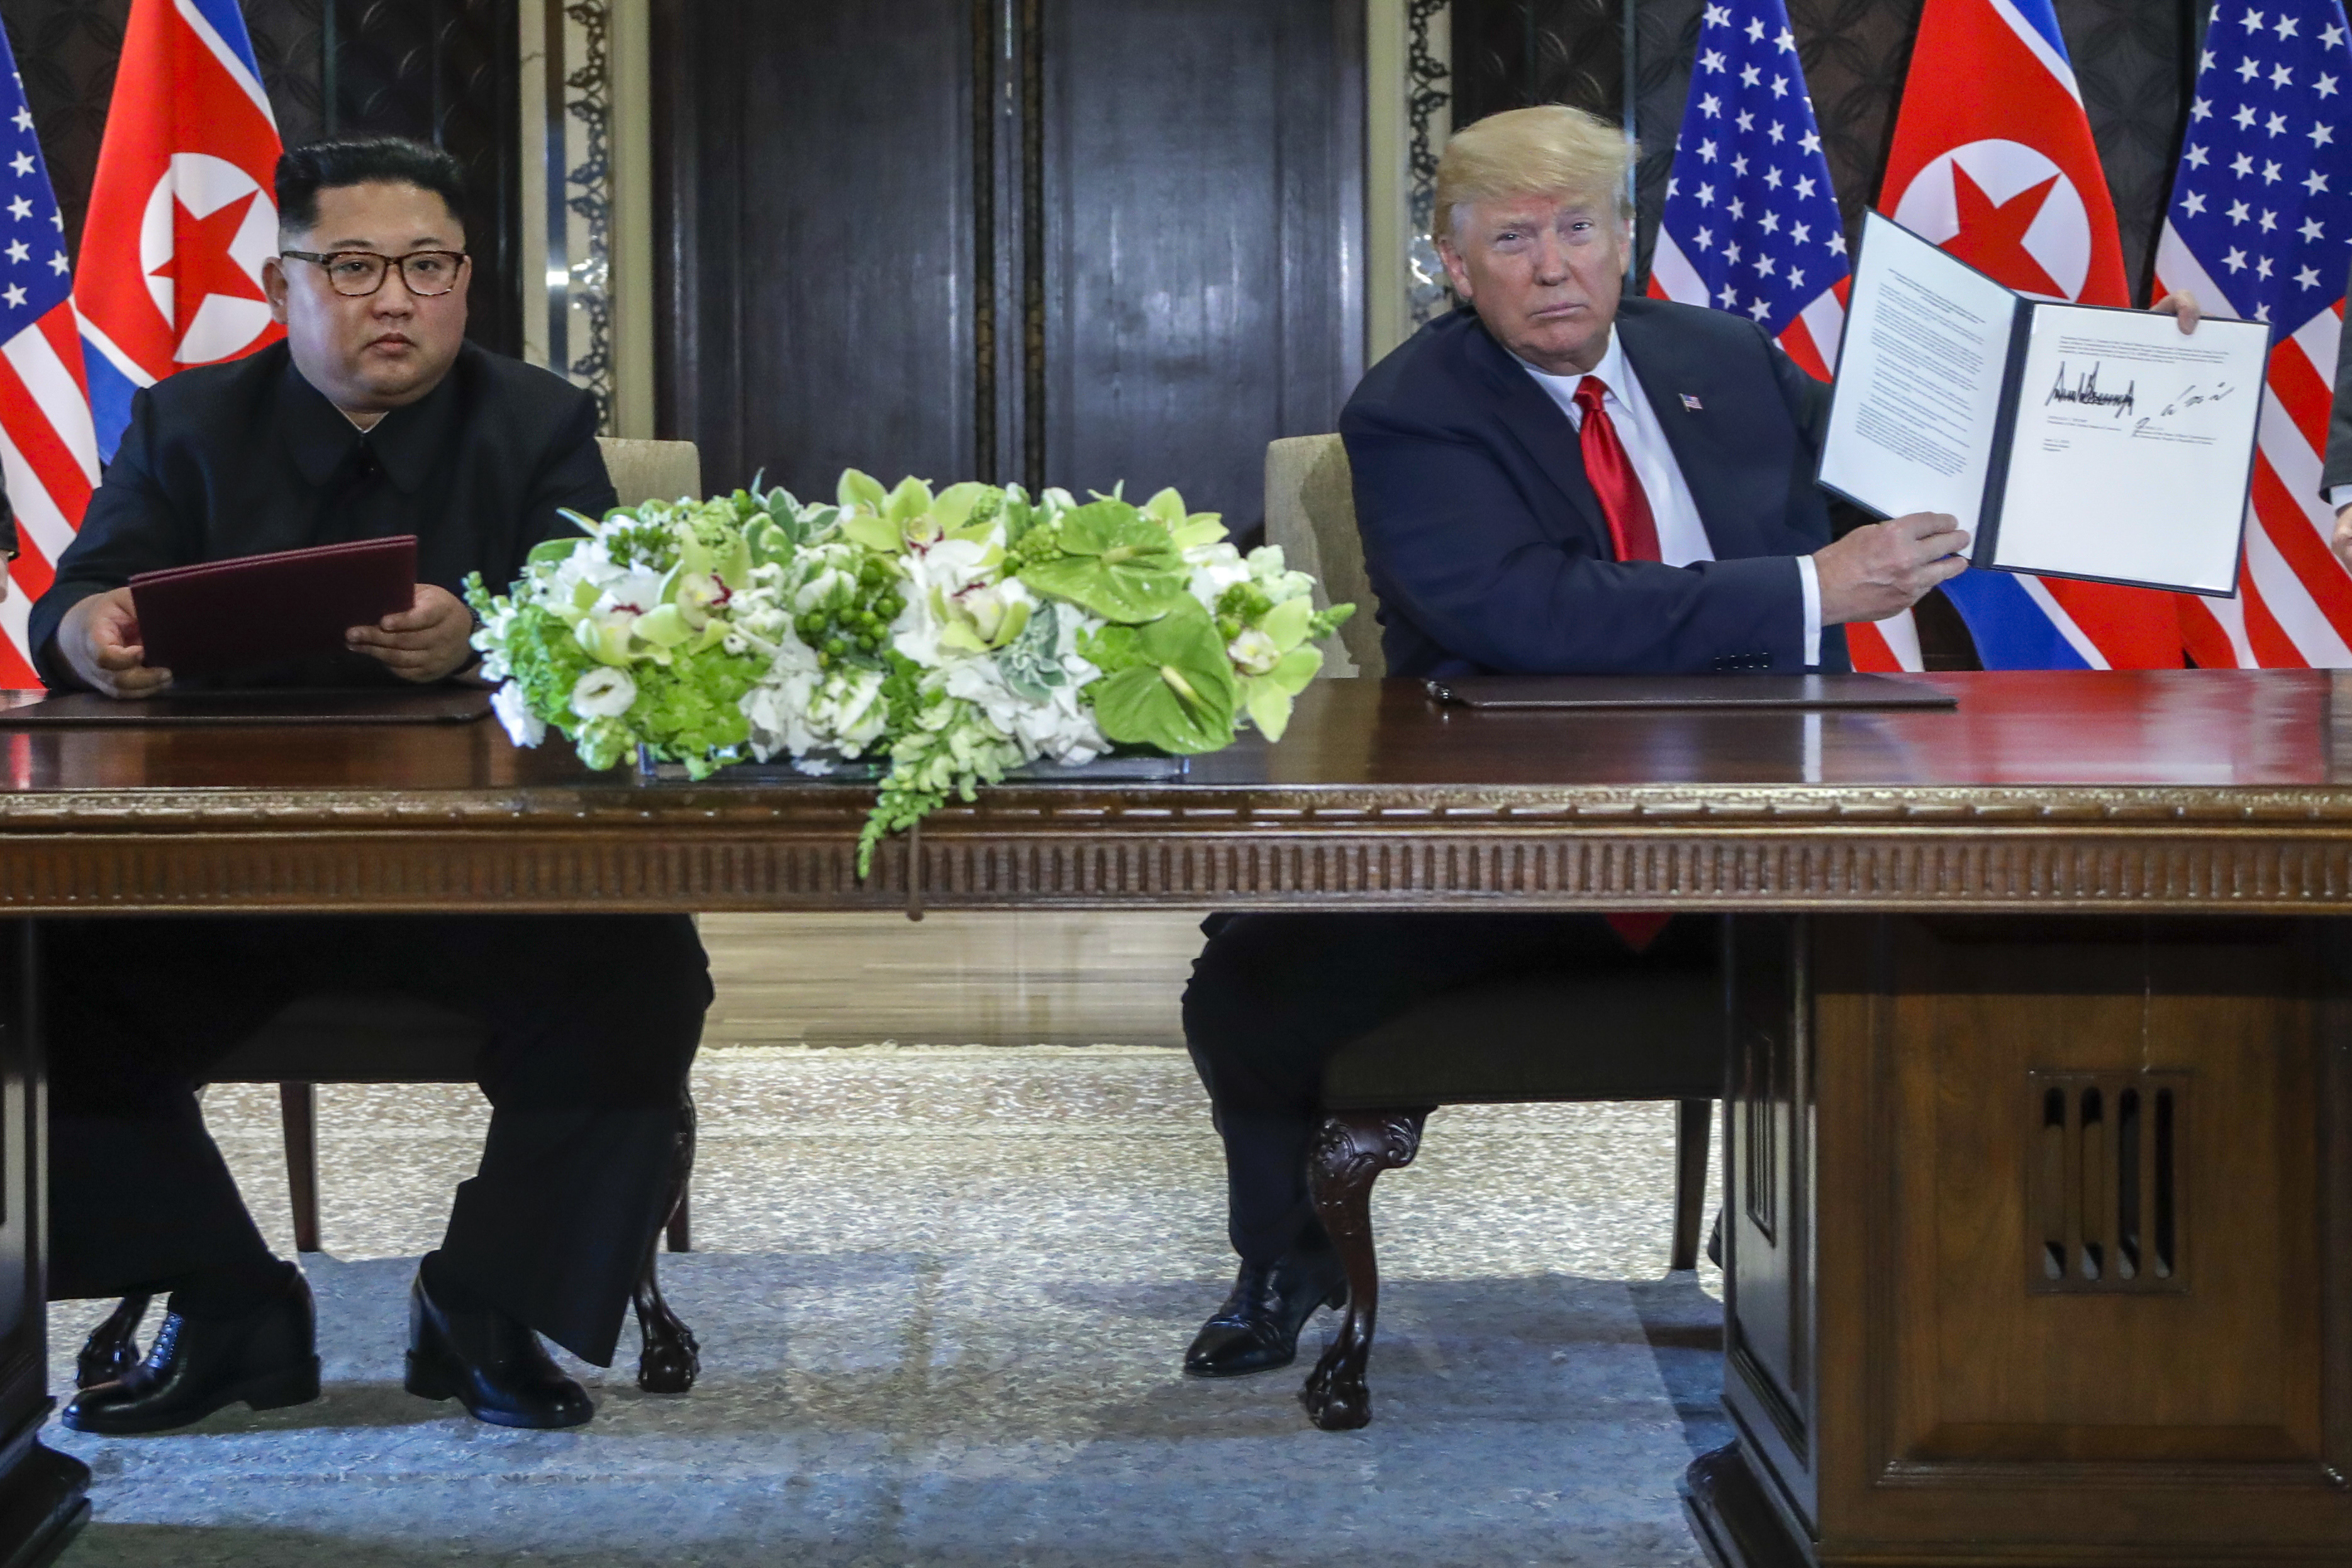 U.S. President Donald Trump holds up the document that he and North Korea leader Kim Jong Un signed at the Capella resort on Sentosa Island Tuesday, June 12, 2018 in Singapore.